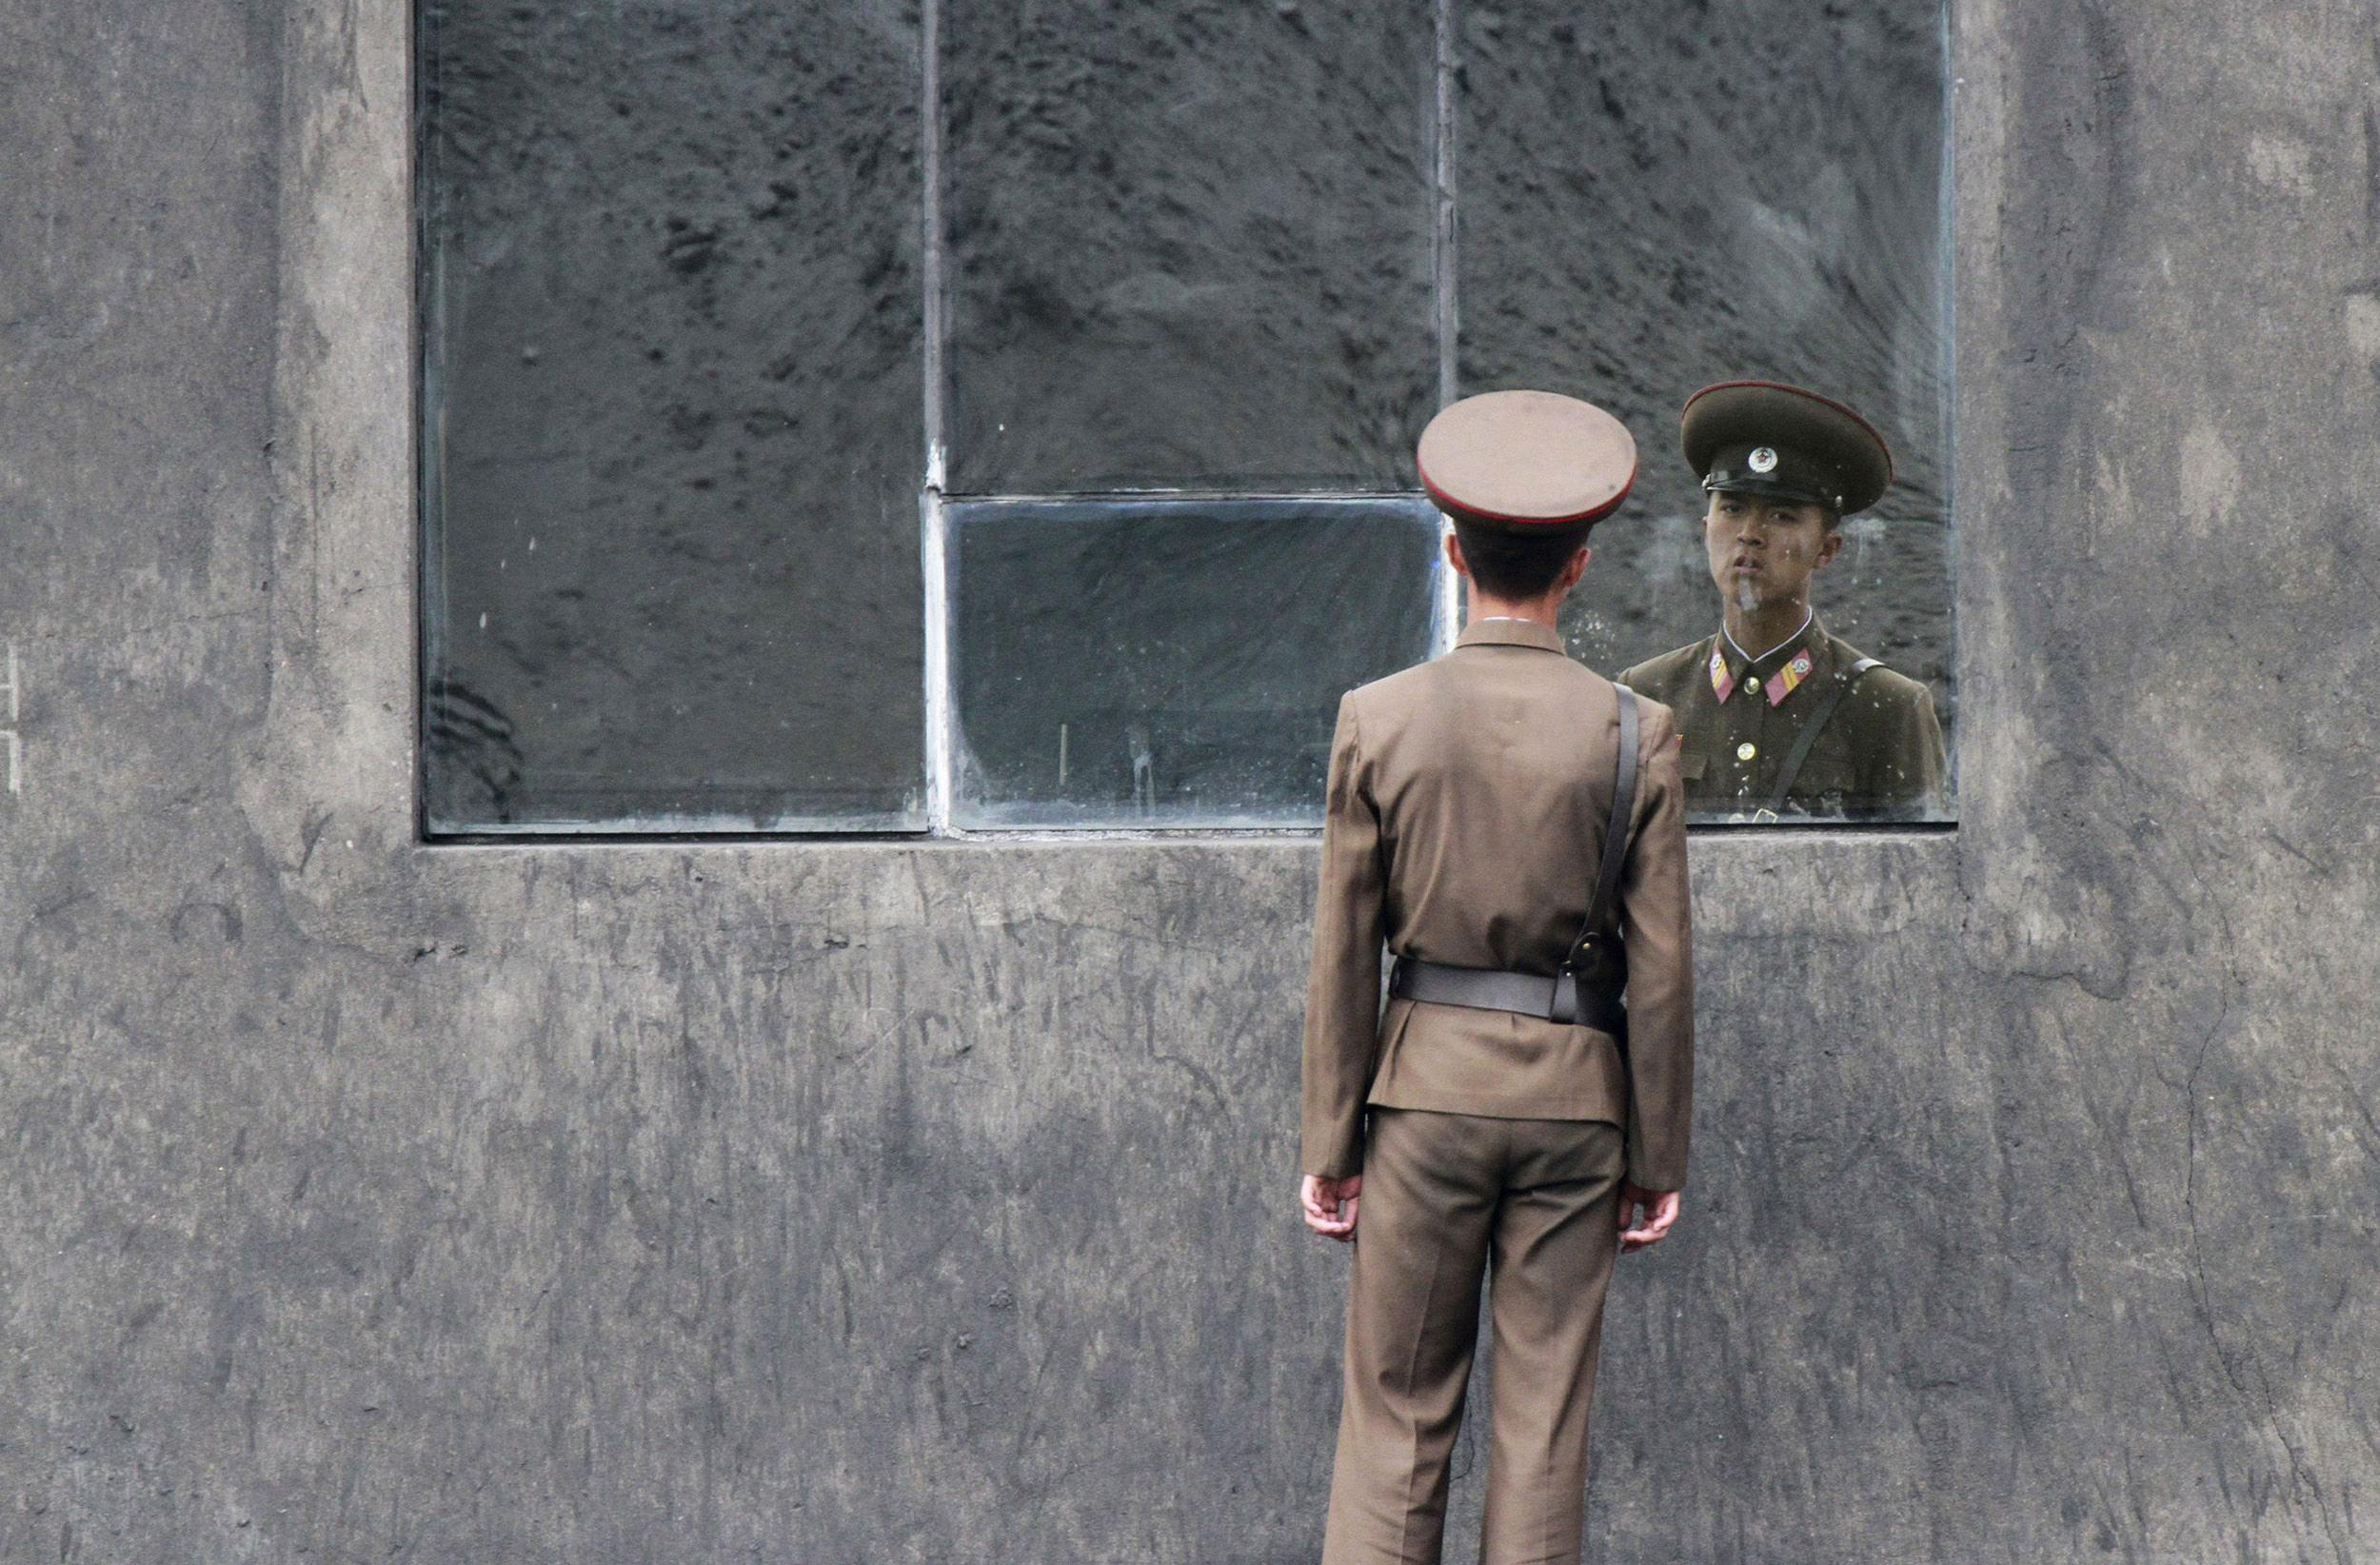 Image: A North Korean soldier stands in front of a window.